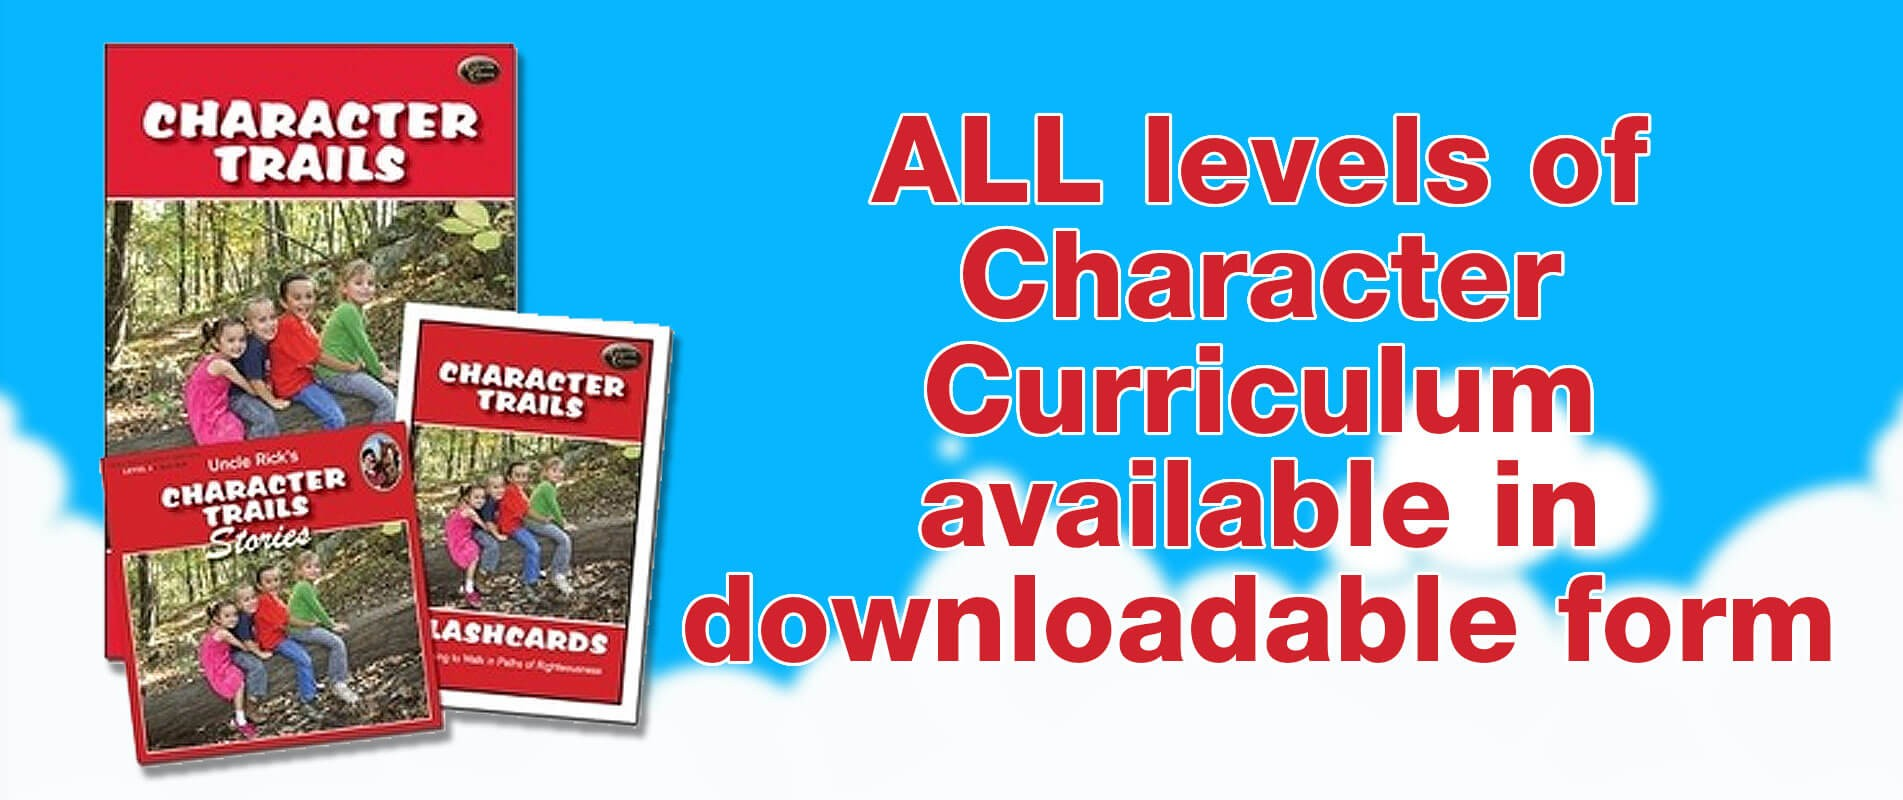 All levels of Character Curriculum available!